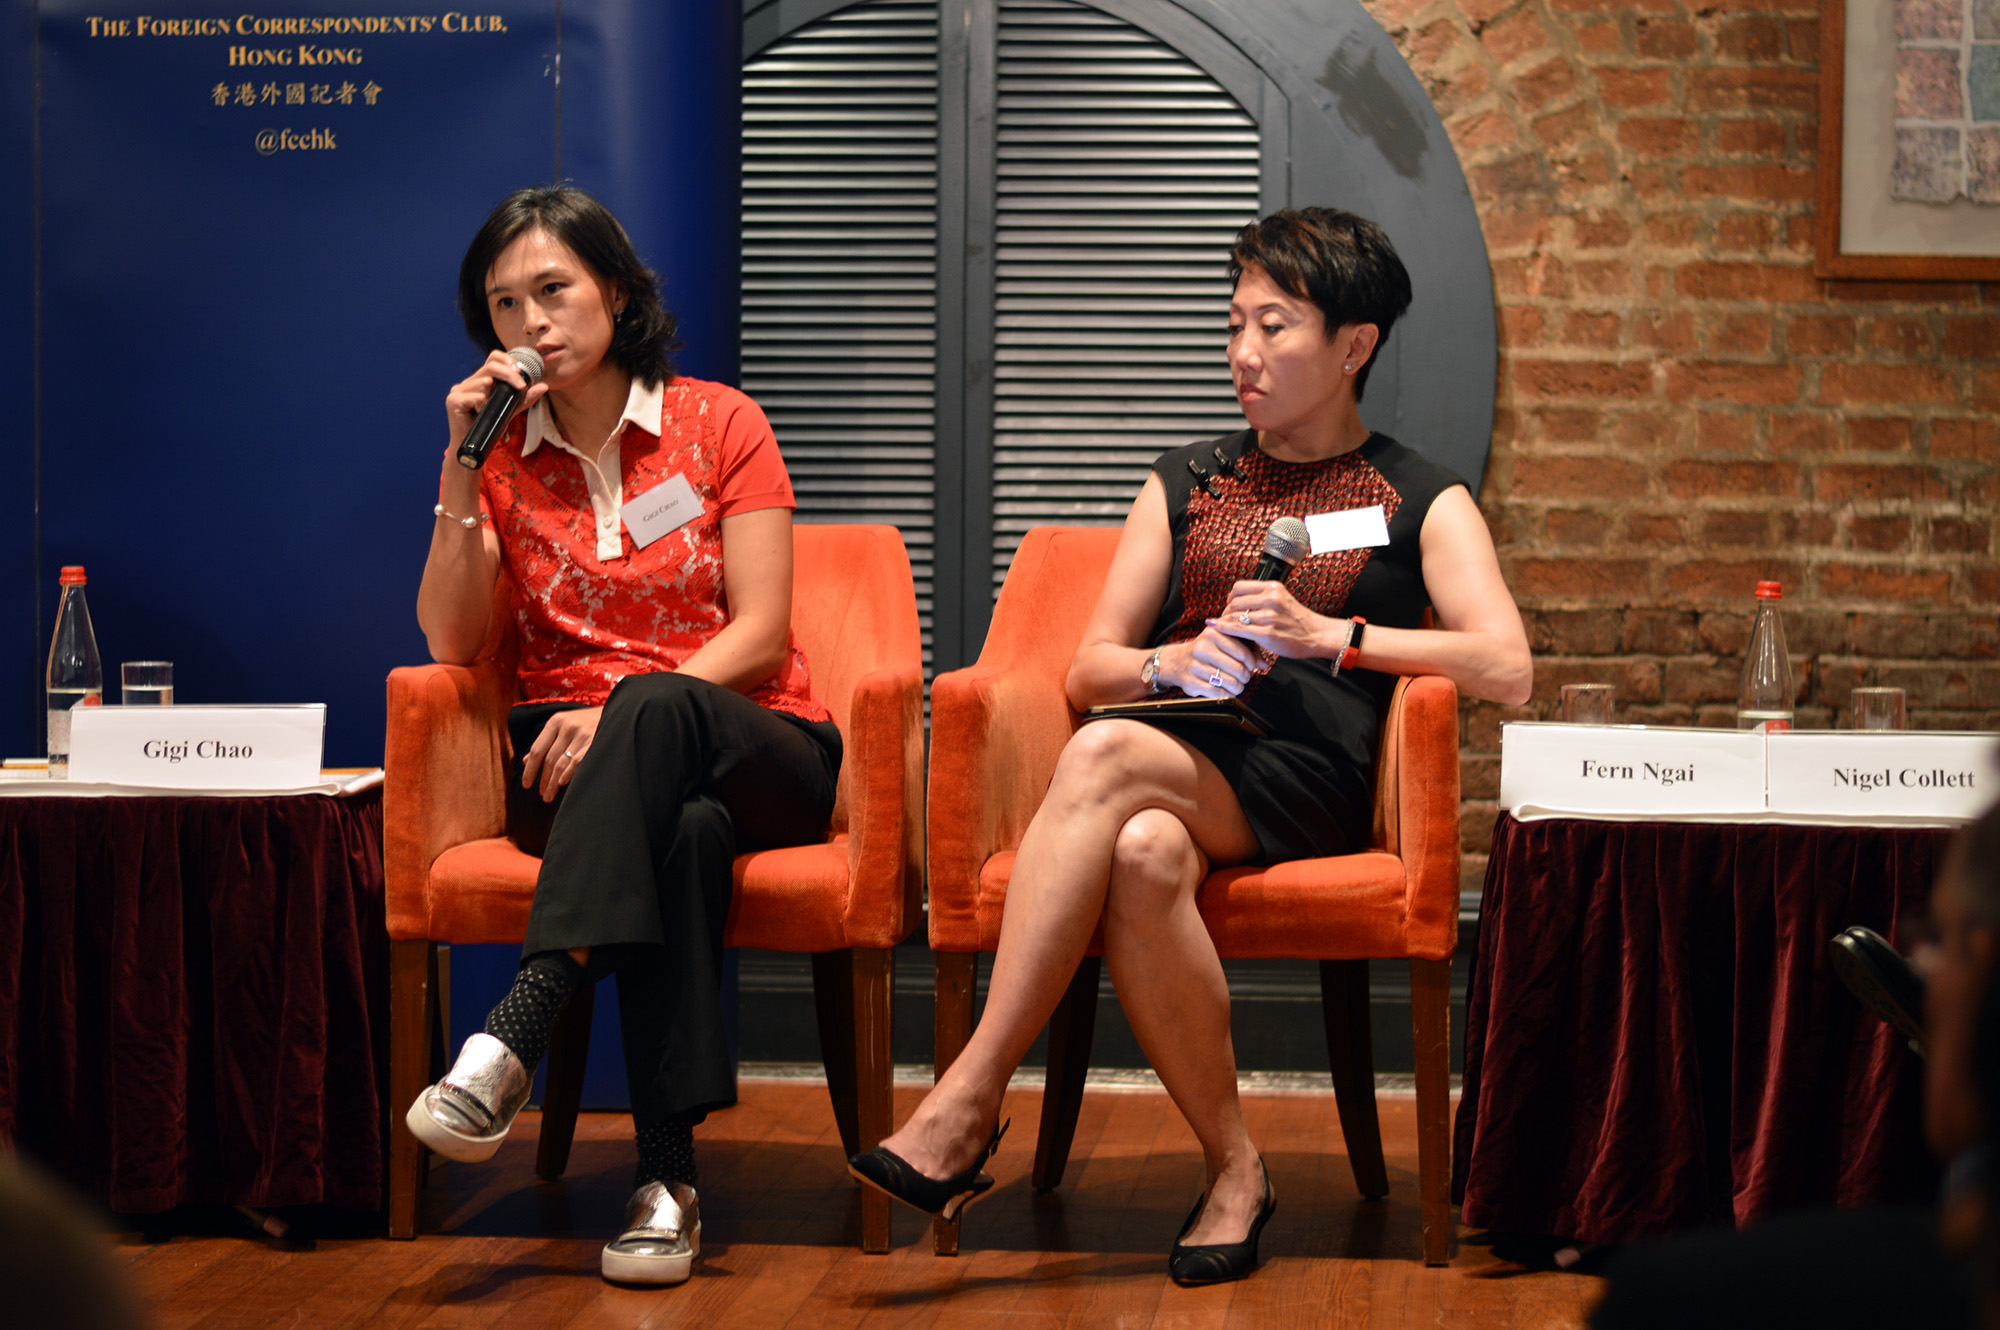 Gigi Chao, left, and Fern Ngai, right, spoke of Hong Kong's shortcomings on LGBT-related issues. Photo: Sarah Graham/FCC